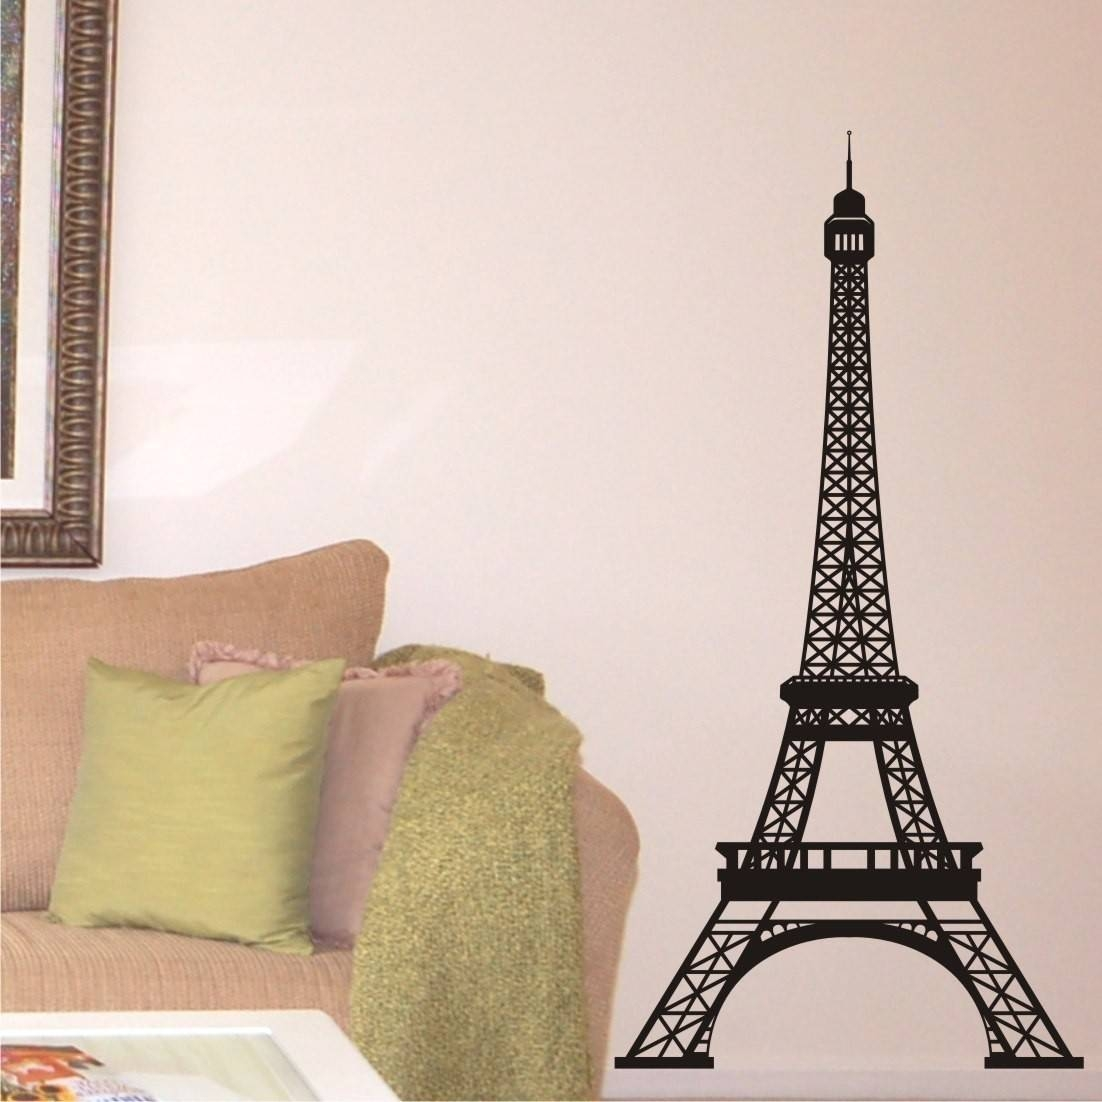 Eiffel Tower Wall Decor Make A Photo Gallery Eiffel Tower Wall With Current Eiffel Tower Wall Art (View 13 of 20)